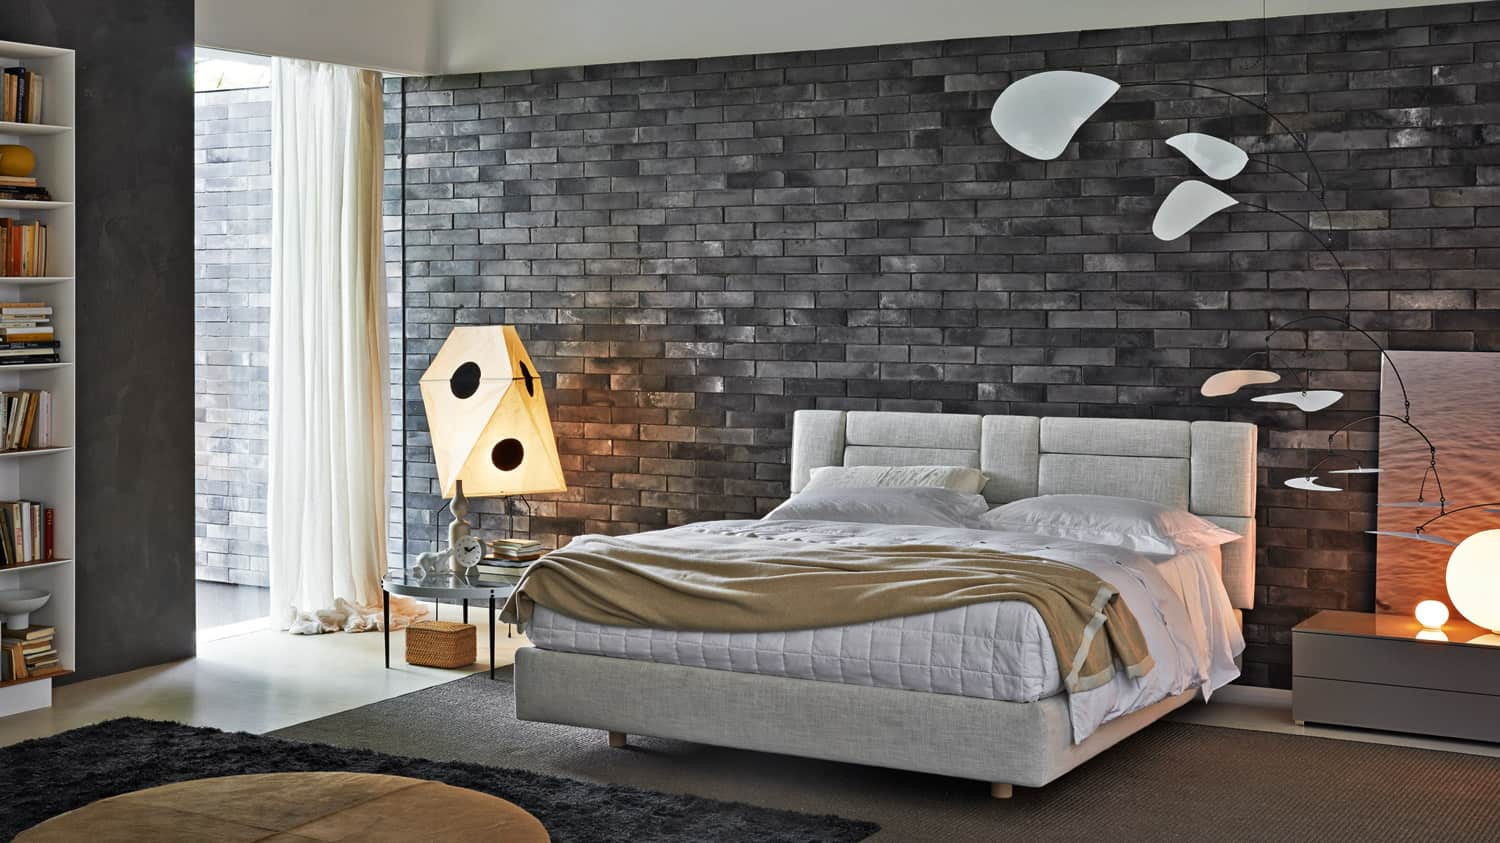 Modern Bedroom Design Ideas - Bedrooms brick walls